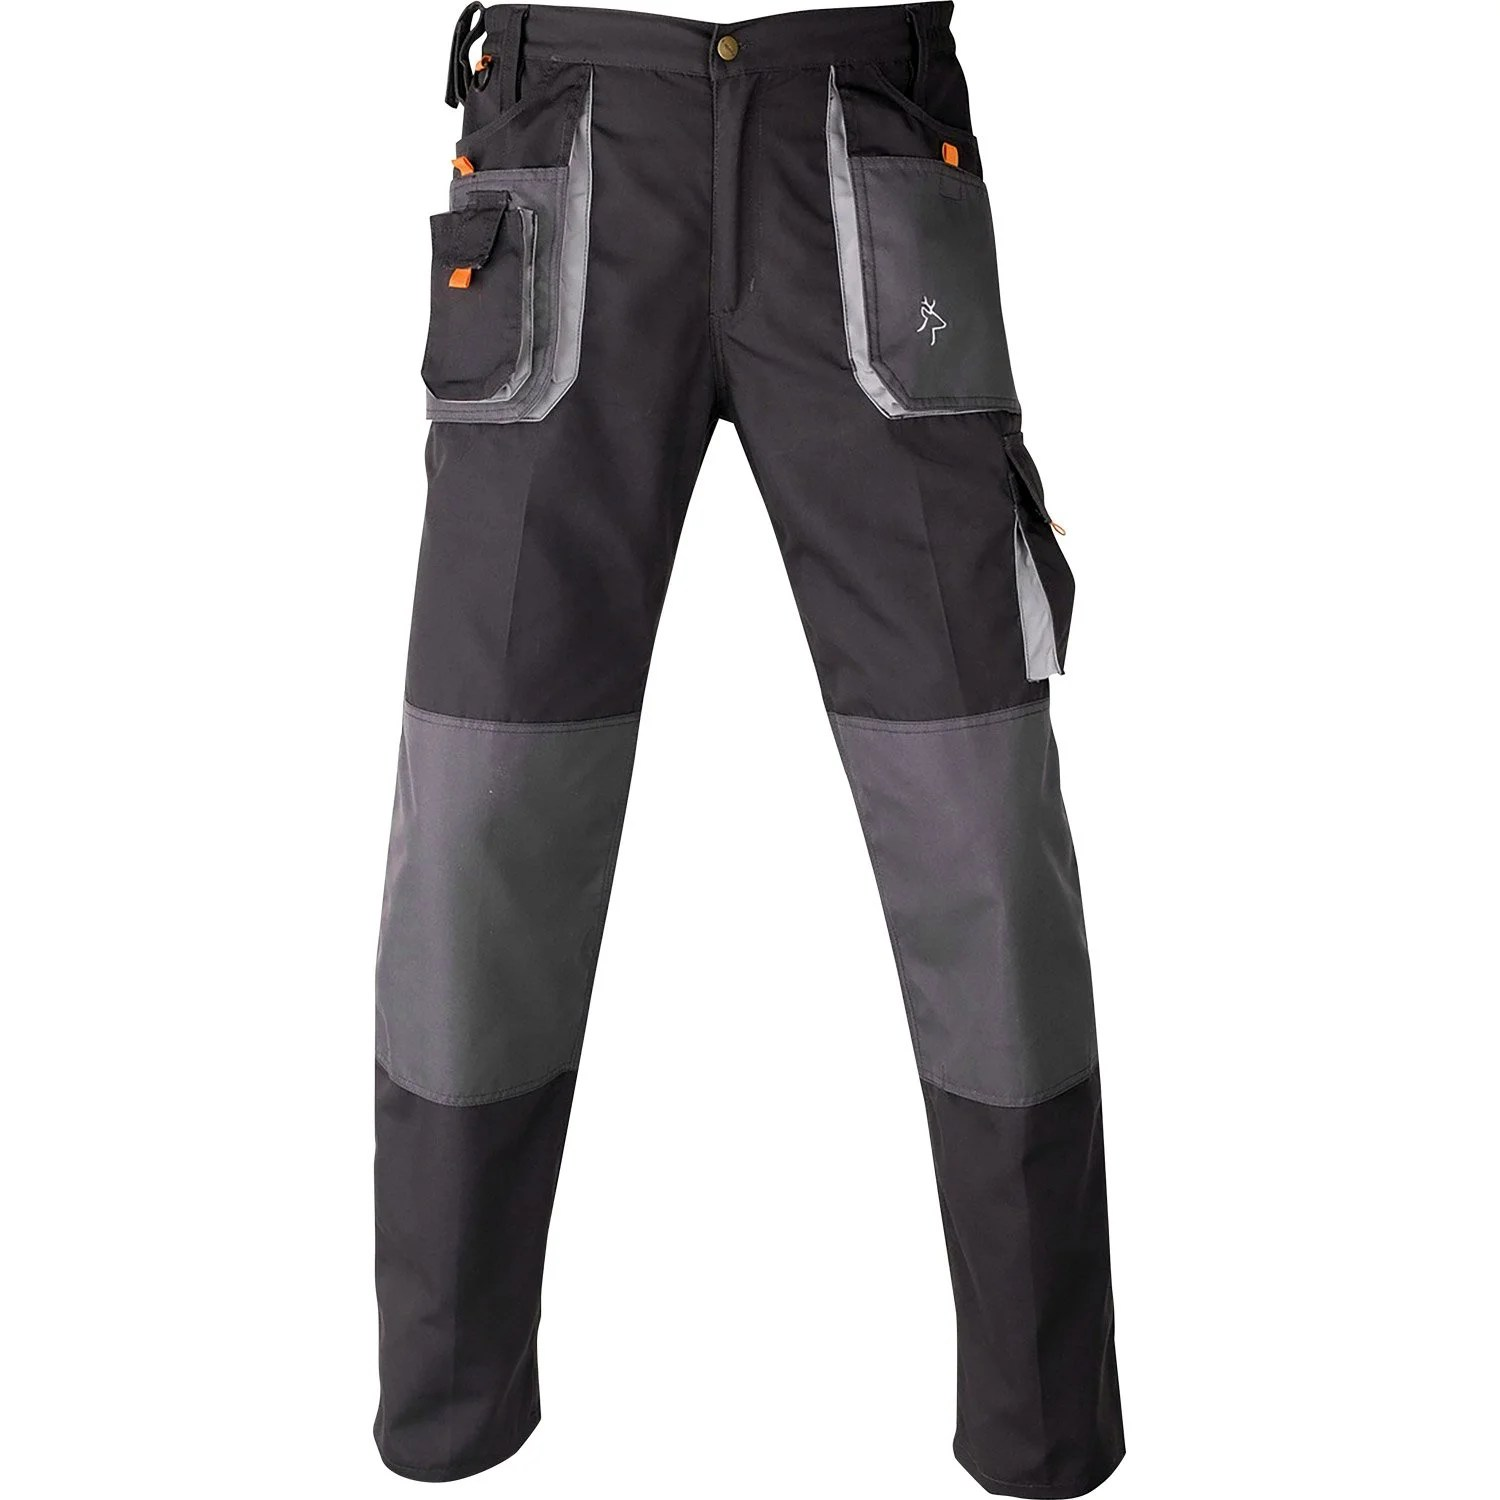 Pantalon Peintre Leroy Merlin Pantalon De Travail Multipoche Kapriol Smart Gris Noir